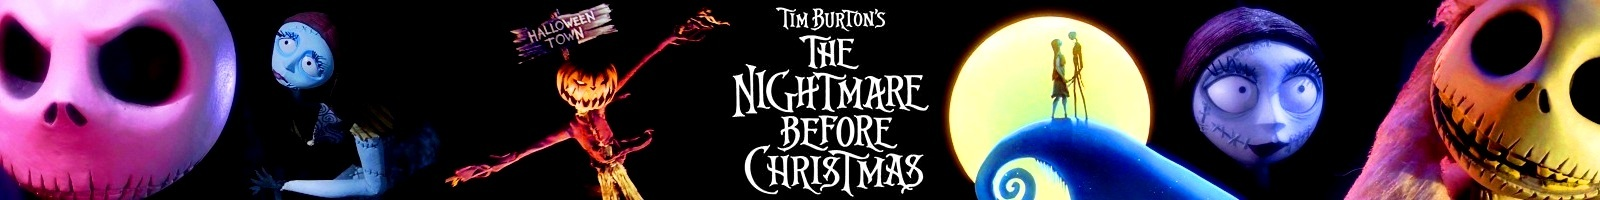 'Nightmare Before Christmas' Banner - Nightmare Before ...